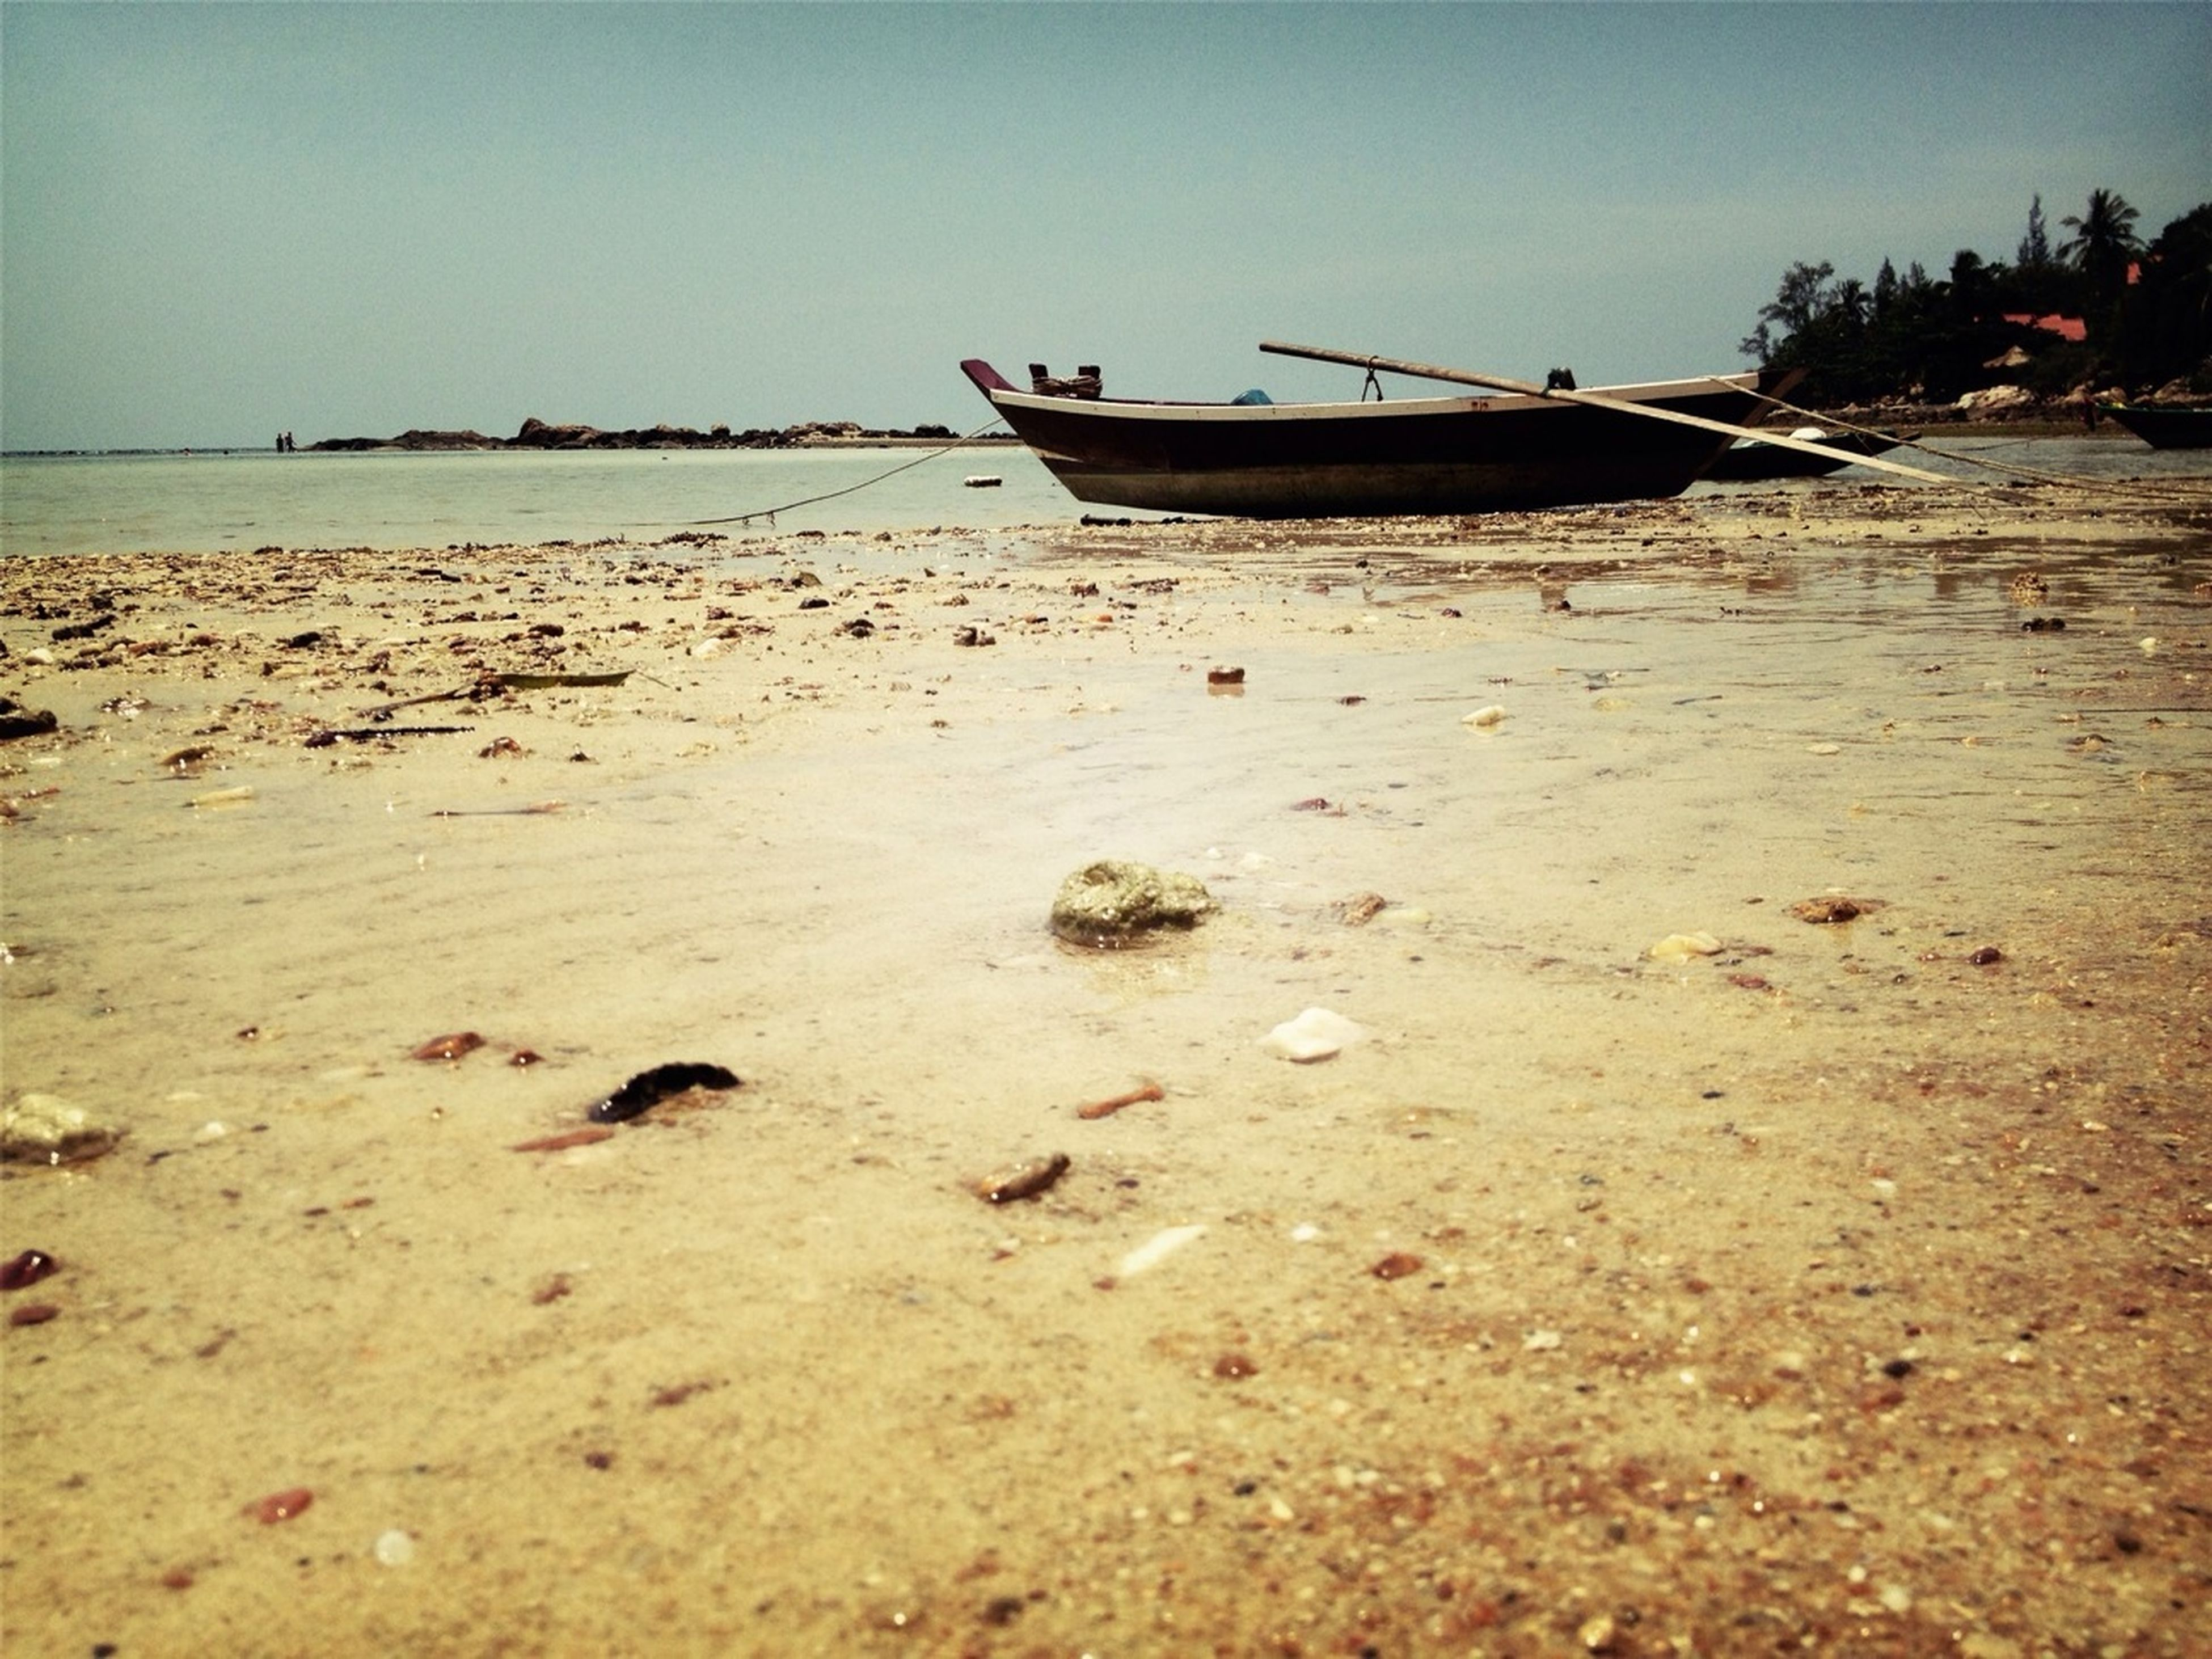 beach, sea, water, nautical vessel, sand, shore, moored, boat, clear sky, horizon over water, transportation, tranquility, mode of transport, tranquil scene, nature, sky, scenics, beauty in nature, outdoors, copy space